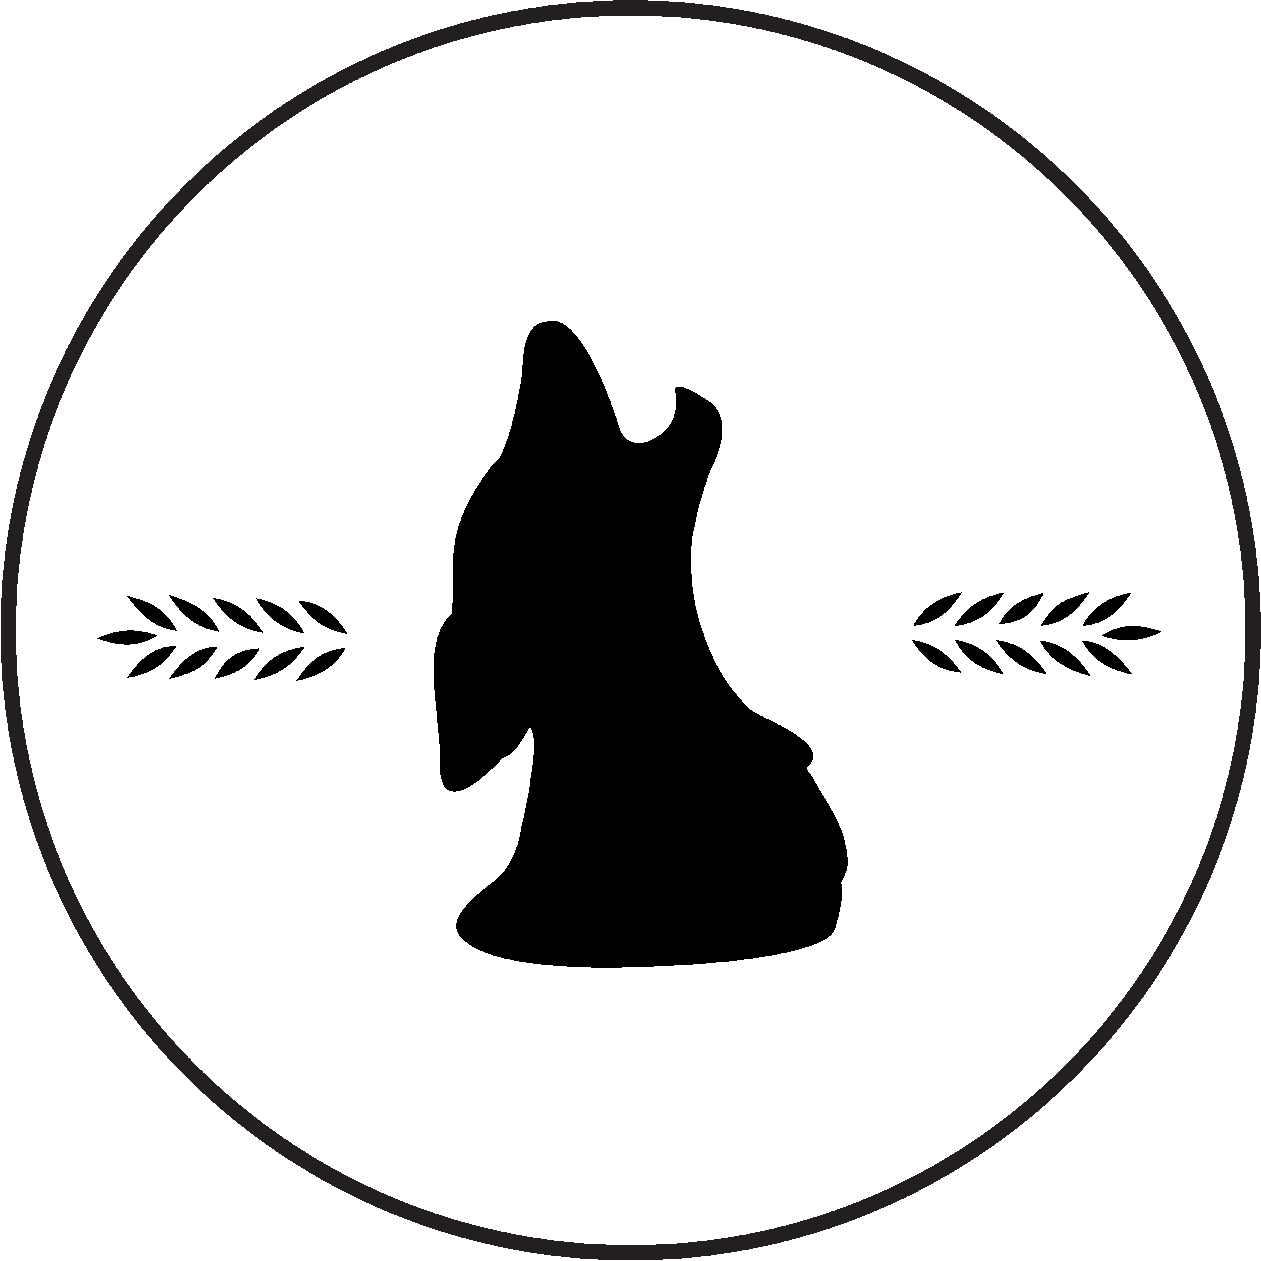 Silhouette of a dog howling. Wheat shafts on the left and right. All images inside a large circle.